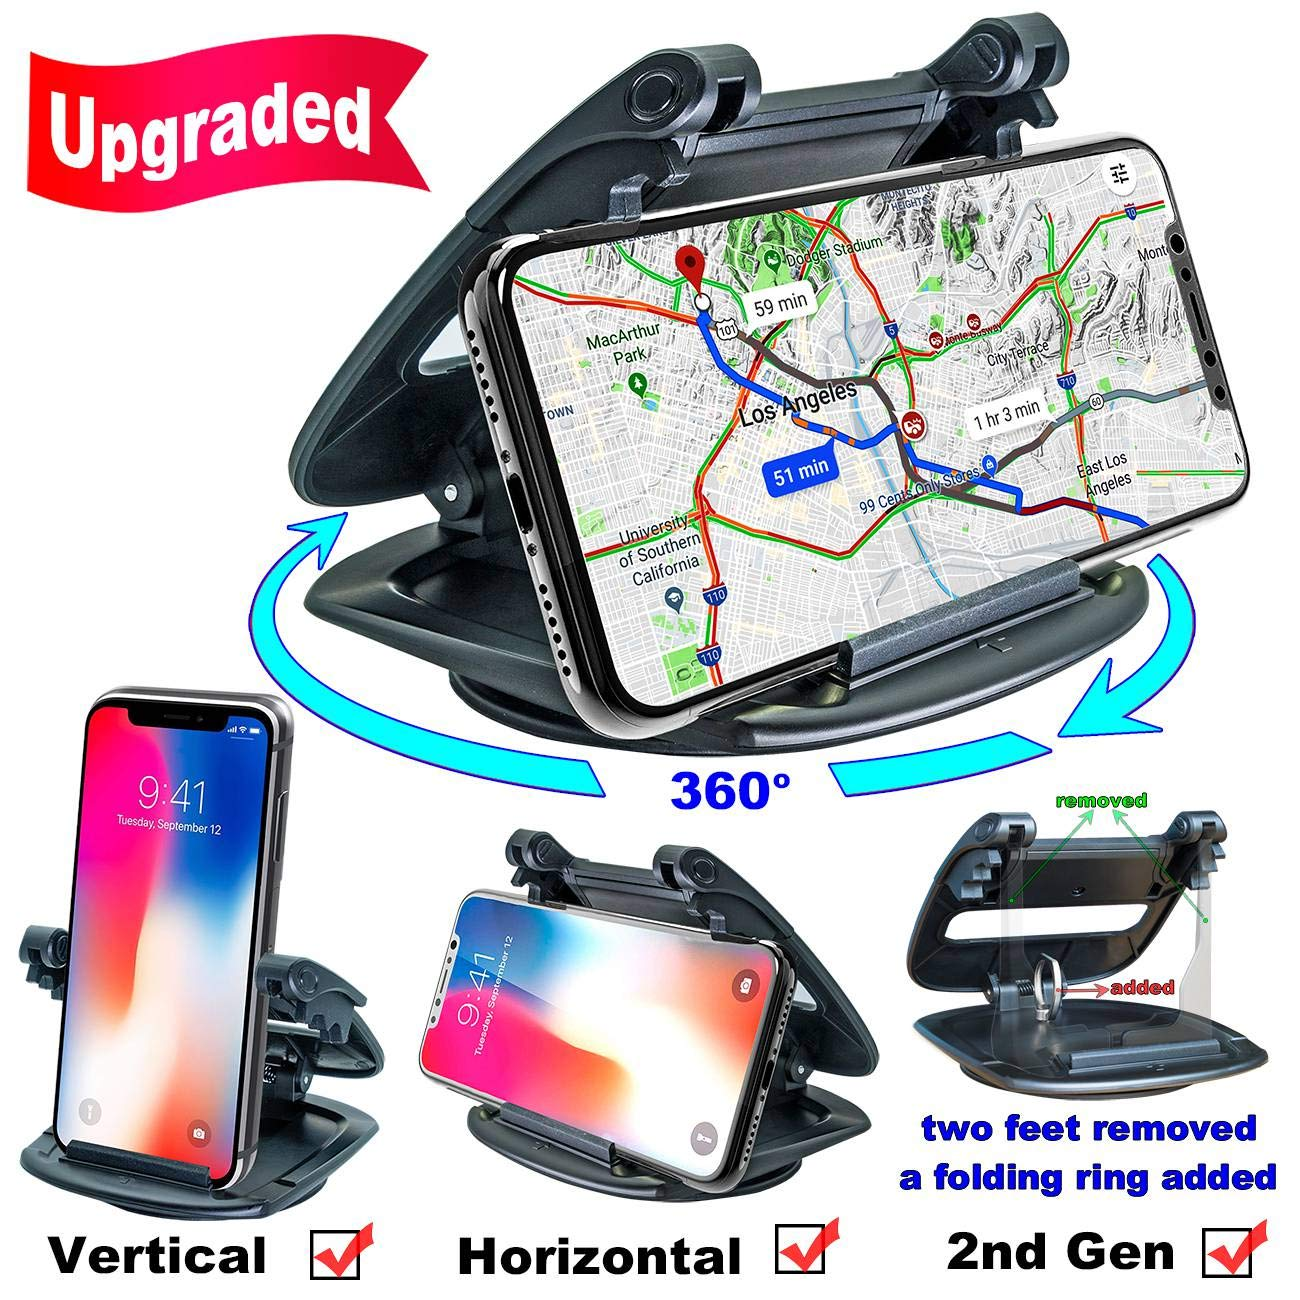 Cell Phone Holder for Car Dashboard 2nd Gen GPS Holder Car Phone Mounting in Pickup Truck Compatible iPhone Xs Max XR X 6S 7 8 Plus Samsung Galaxy Note 9 S9 Pixel Car Phone Mount Silicone Dash Pad